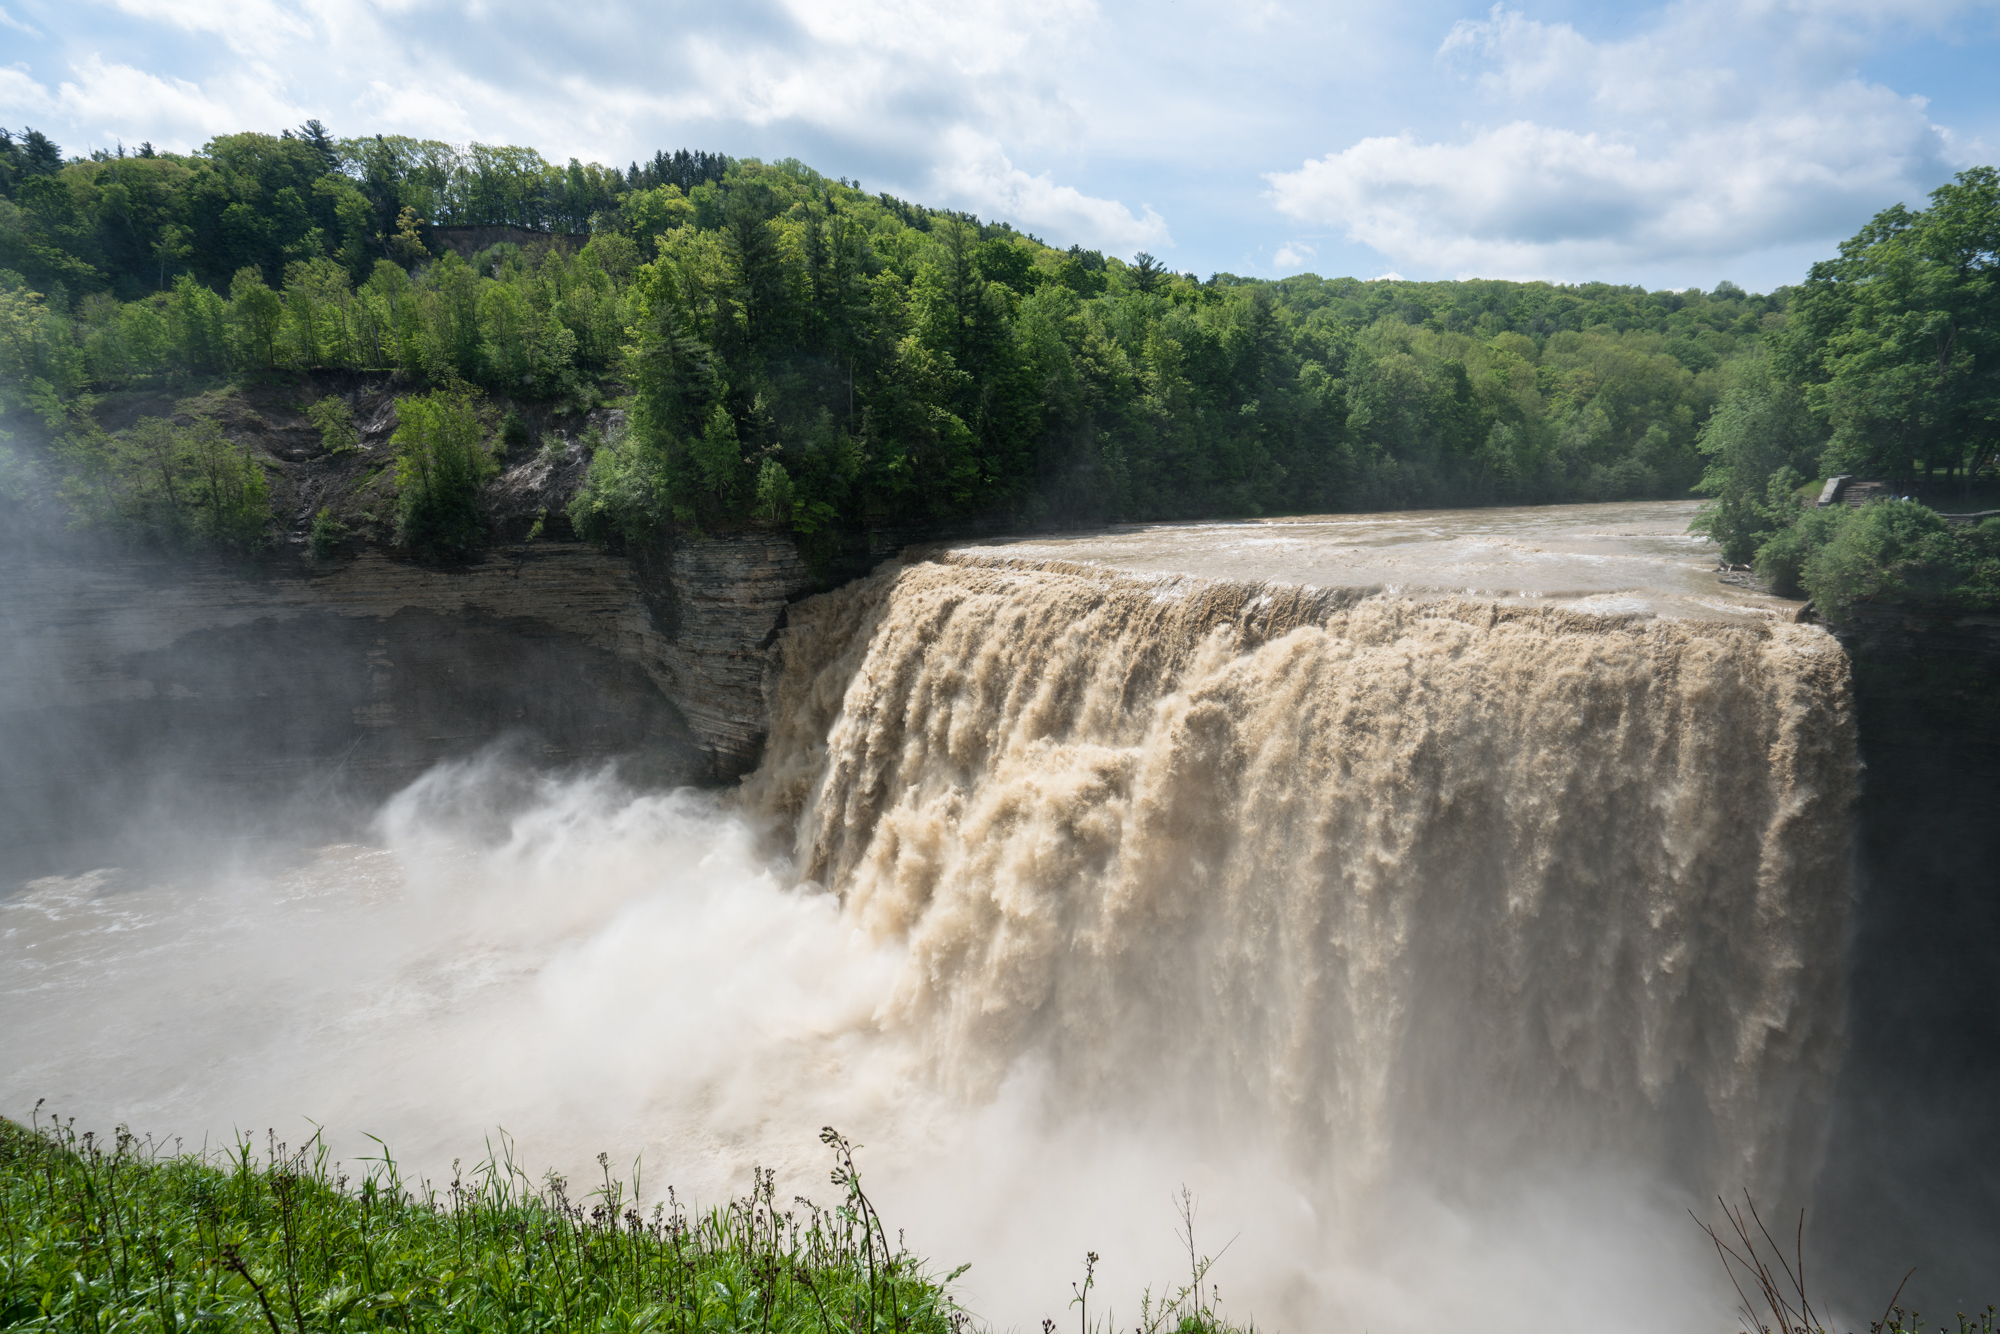 A very wet spring means tonnes of water flowing over the falls at Letchworth State Park.